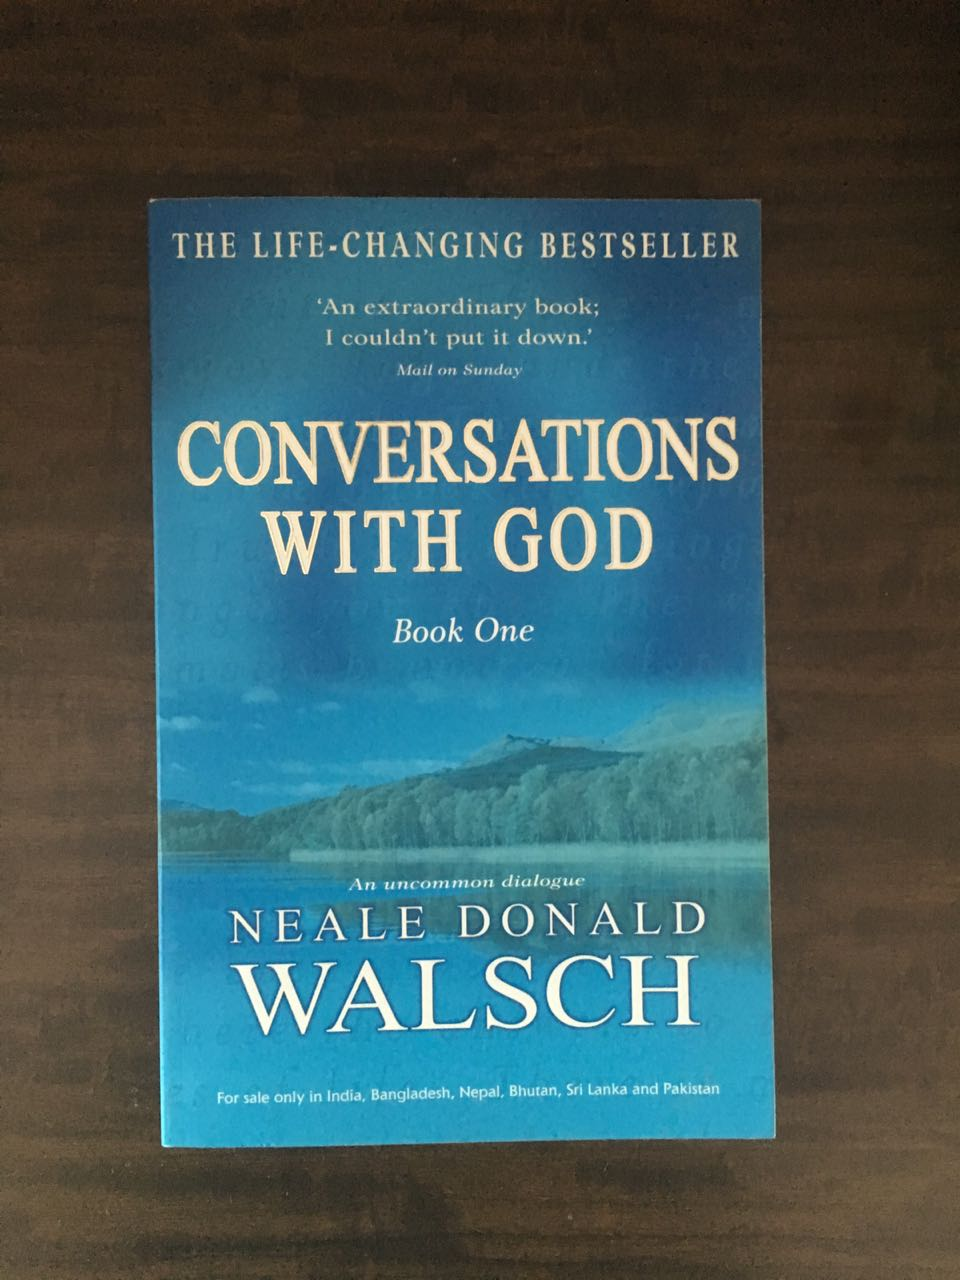 Conversations with God by Neale Donald Walsch, Spiritual Books